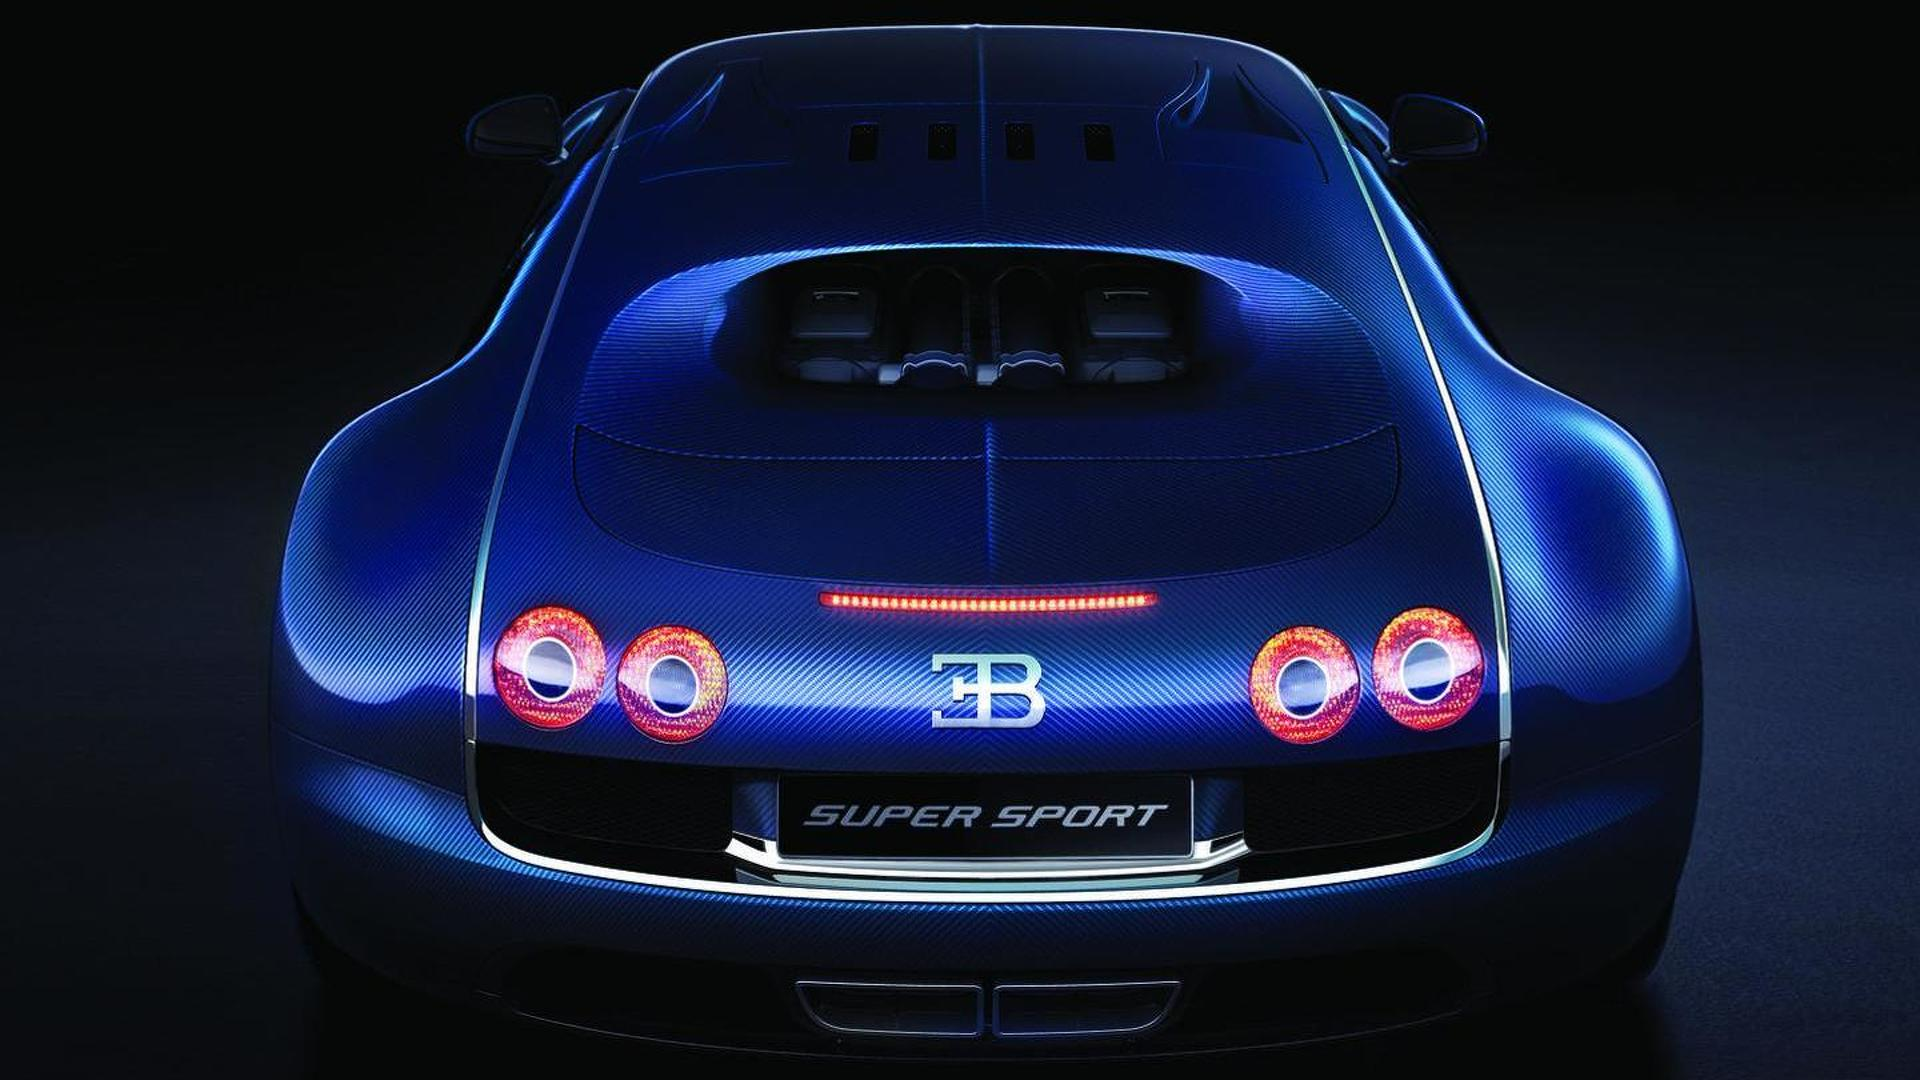 Bugatti Veyron Super Sport Is Once Again The Fastest Production Car 2013 Engine Diagram In World